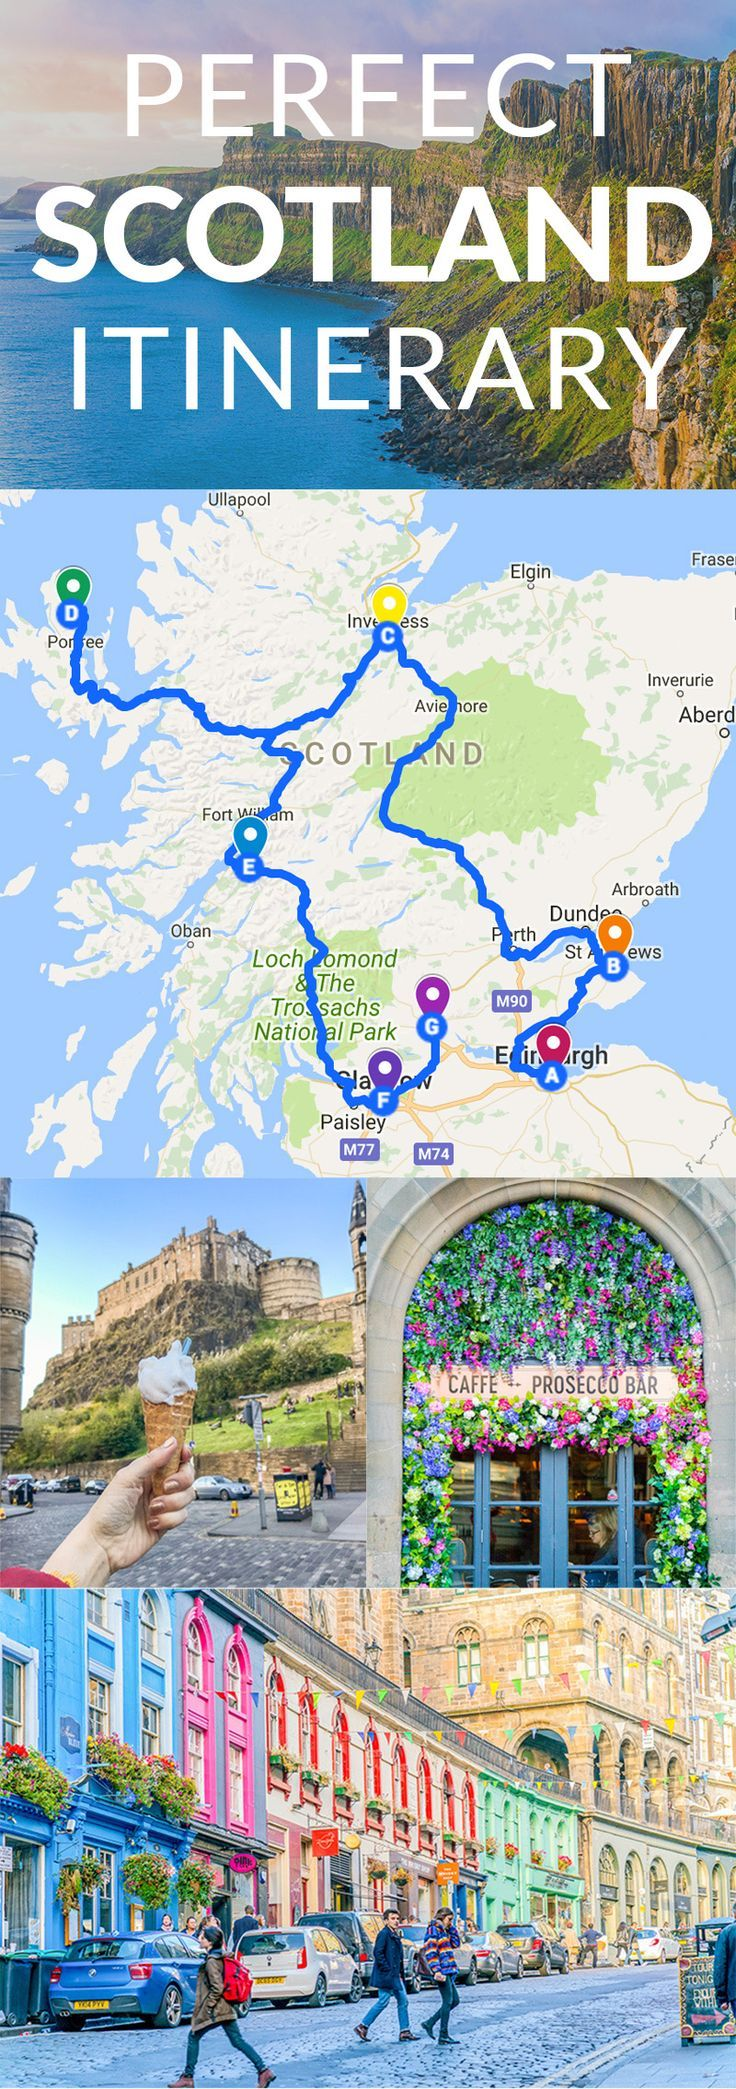 Perfect Scotland Itinerary | Scotland, Buckets and Vacation